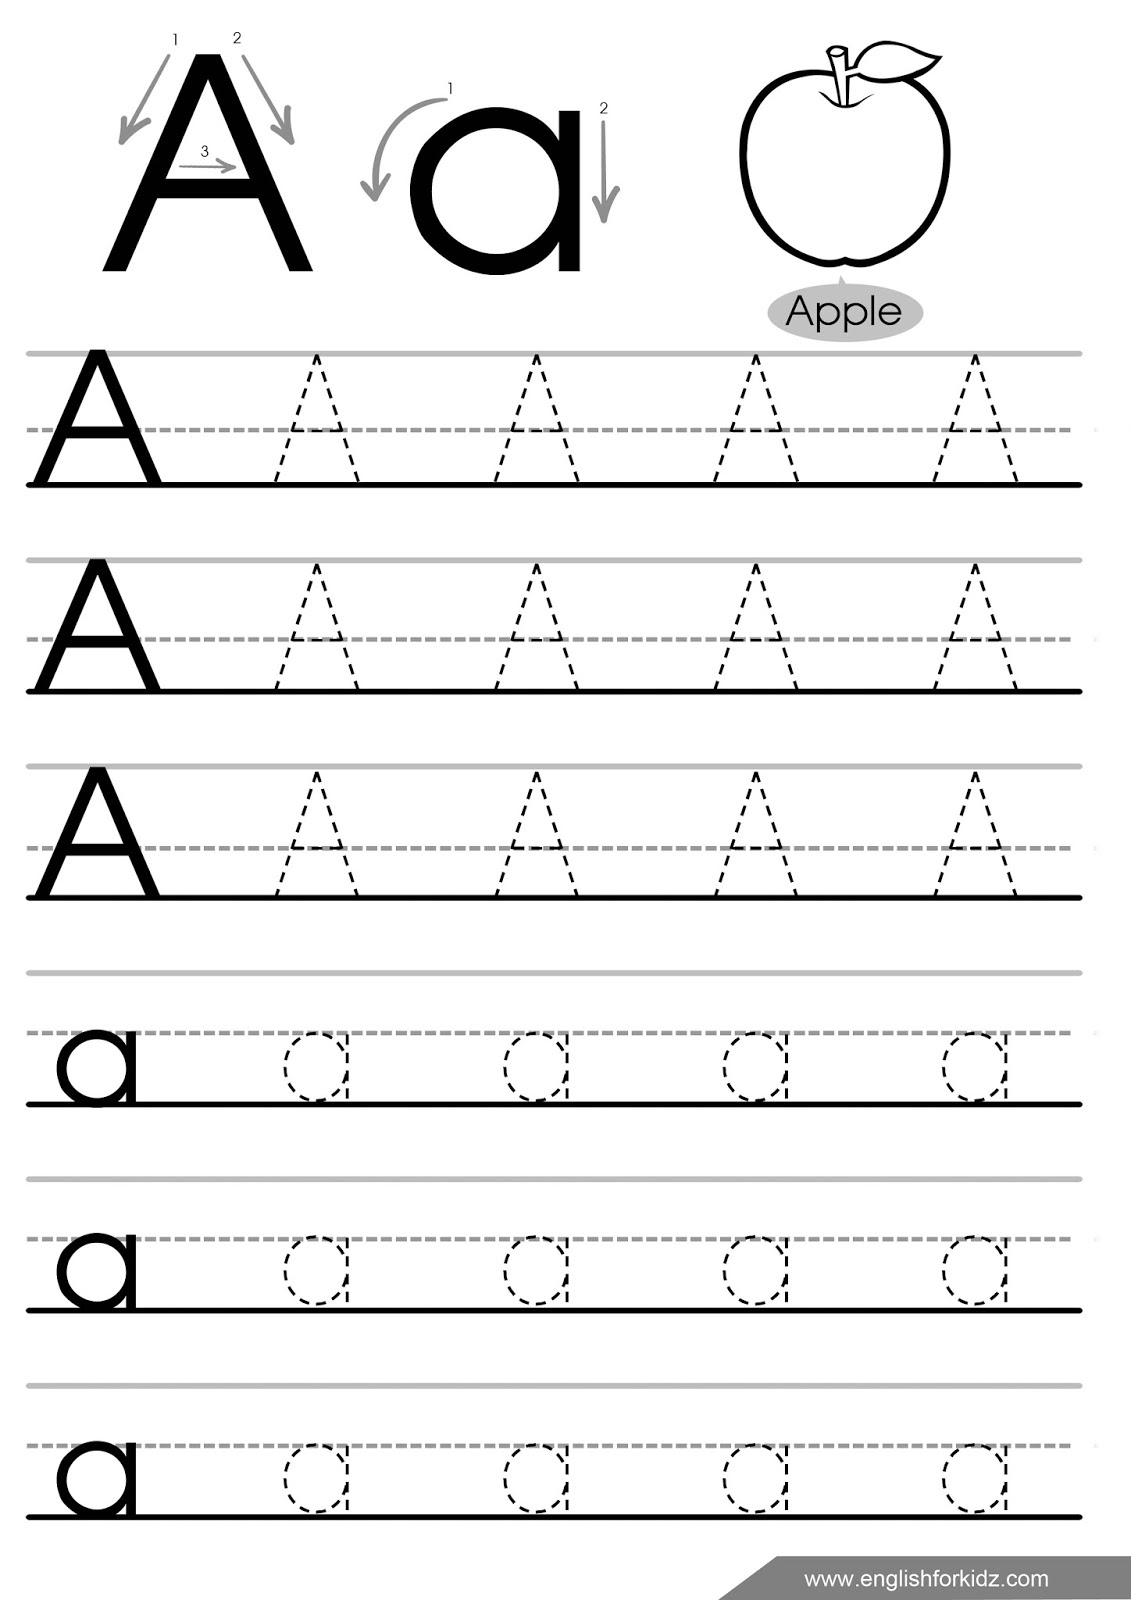 Letter Tracing Worksheets (Letters A - J) regarding Tracing Letter 1